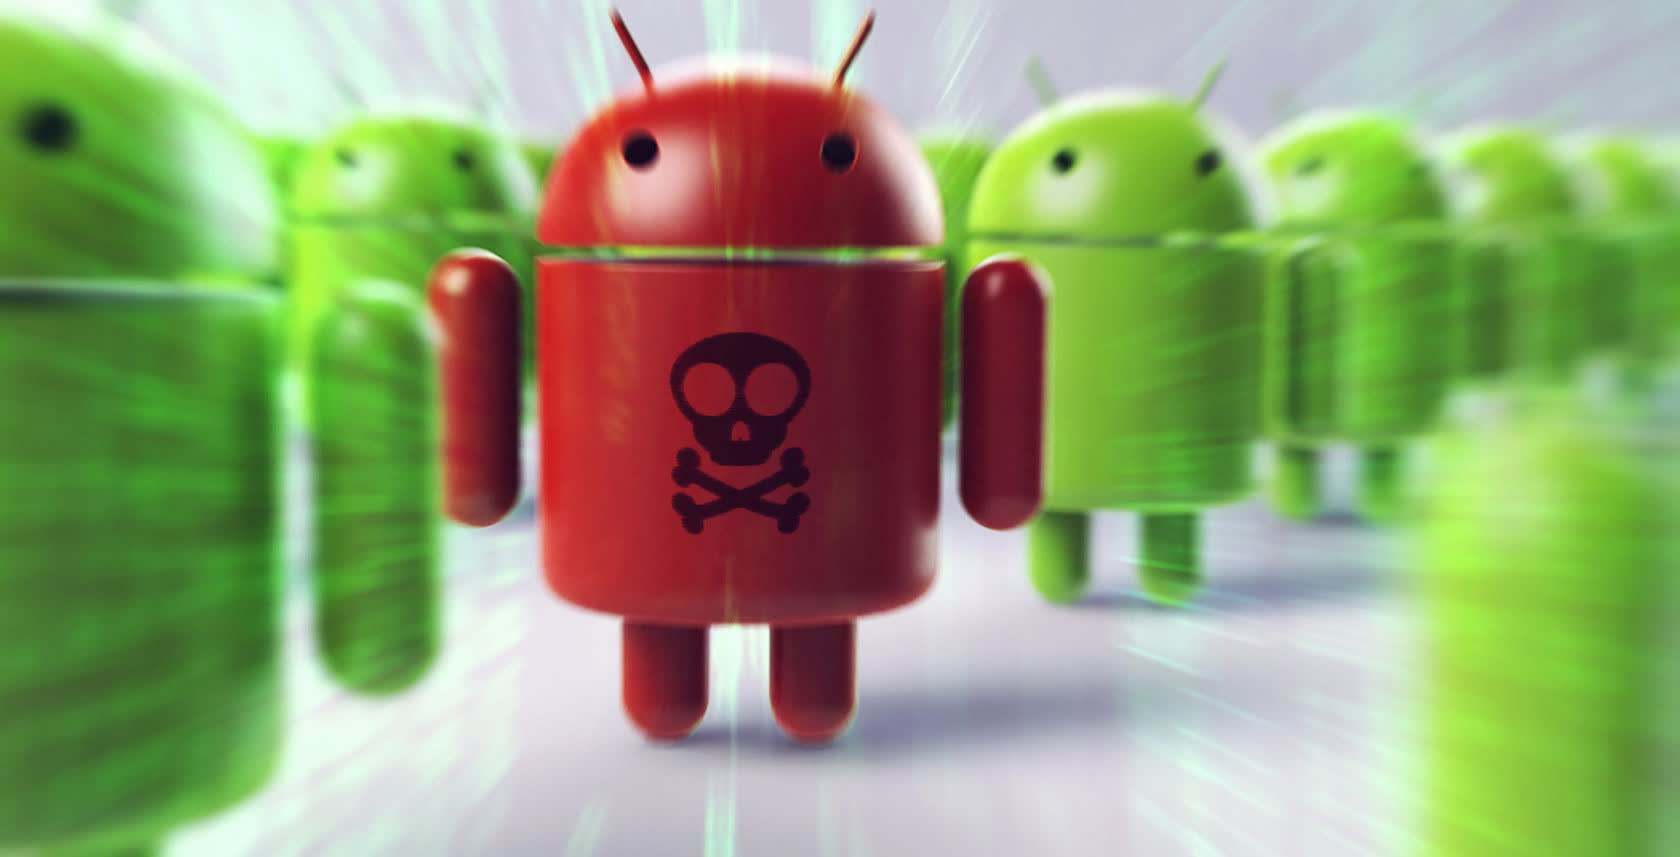 64 new variants of 'Joker' malware have invaded Android app stores